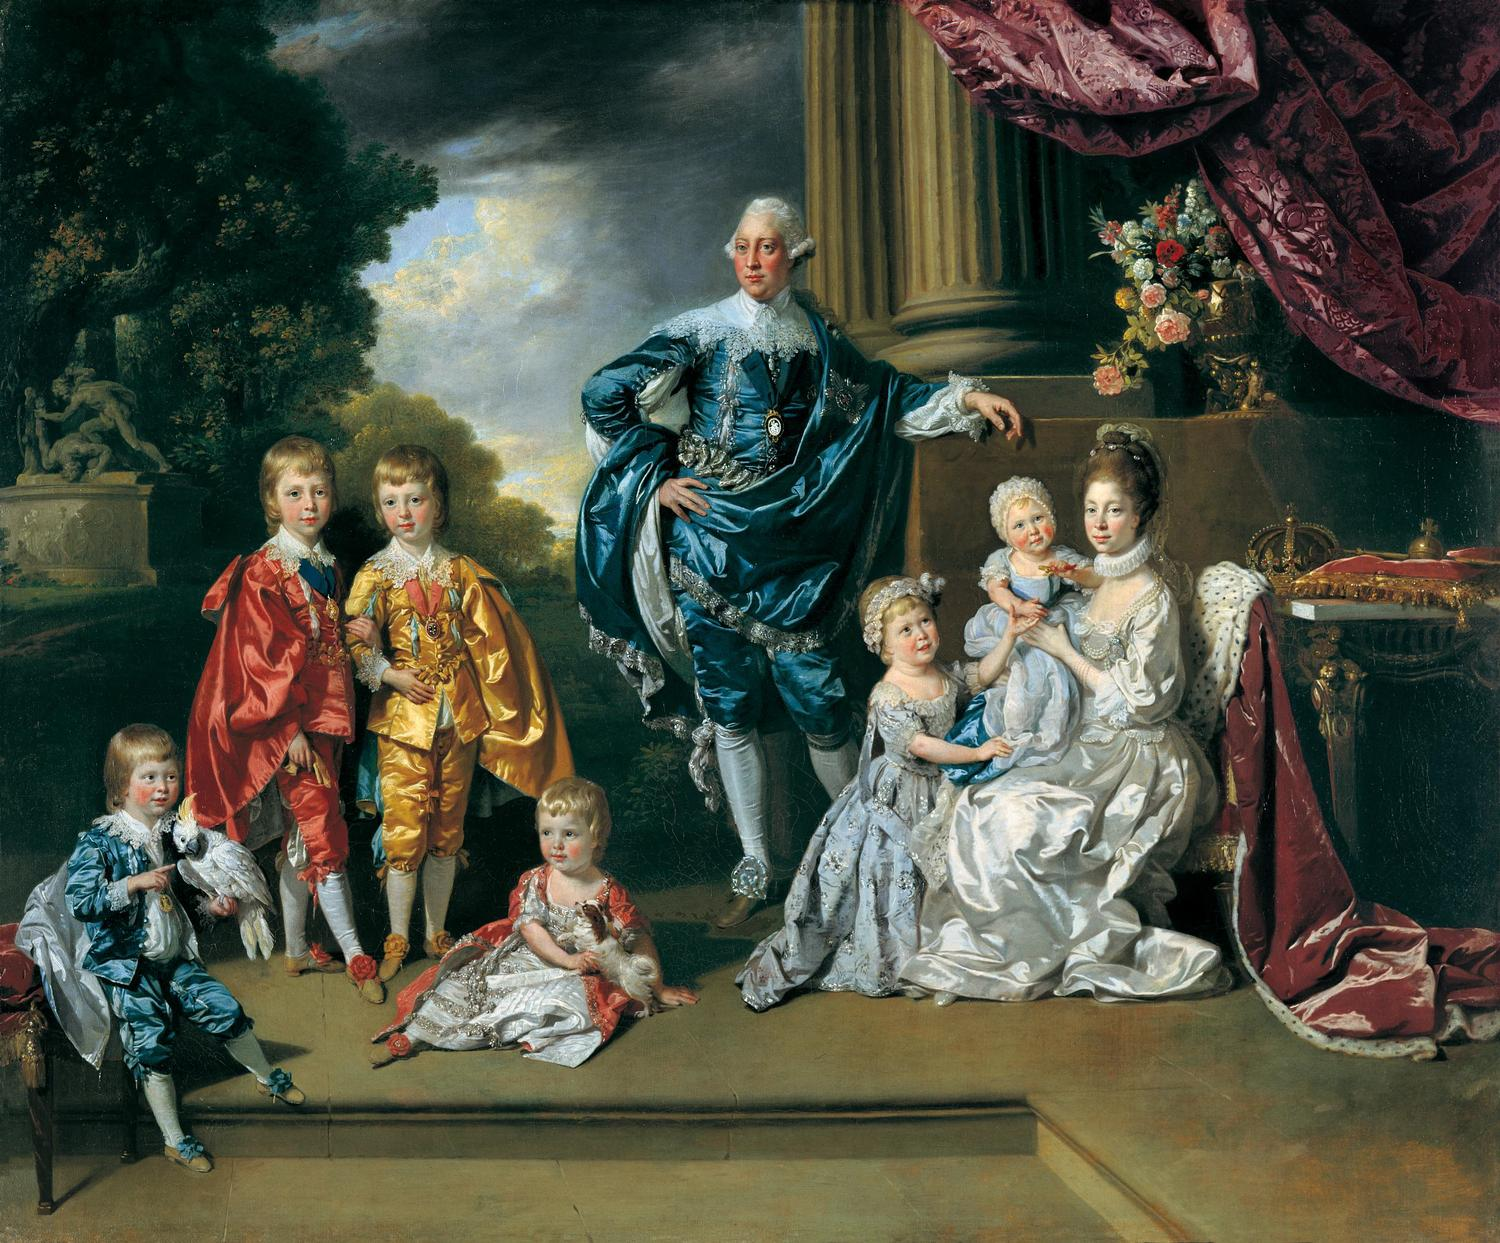 George III, Queen Charlotte and their Six Eldest Children by Johan Zoffany, 1770